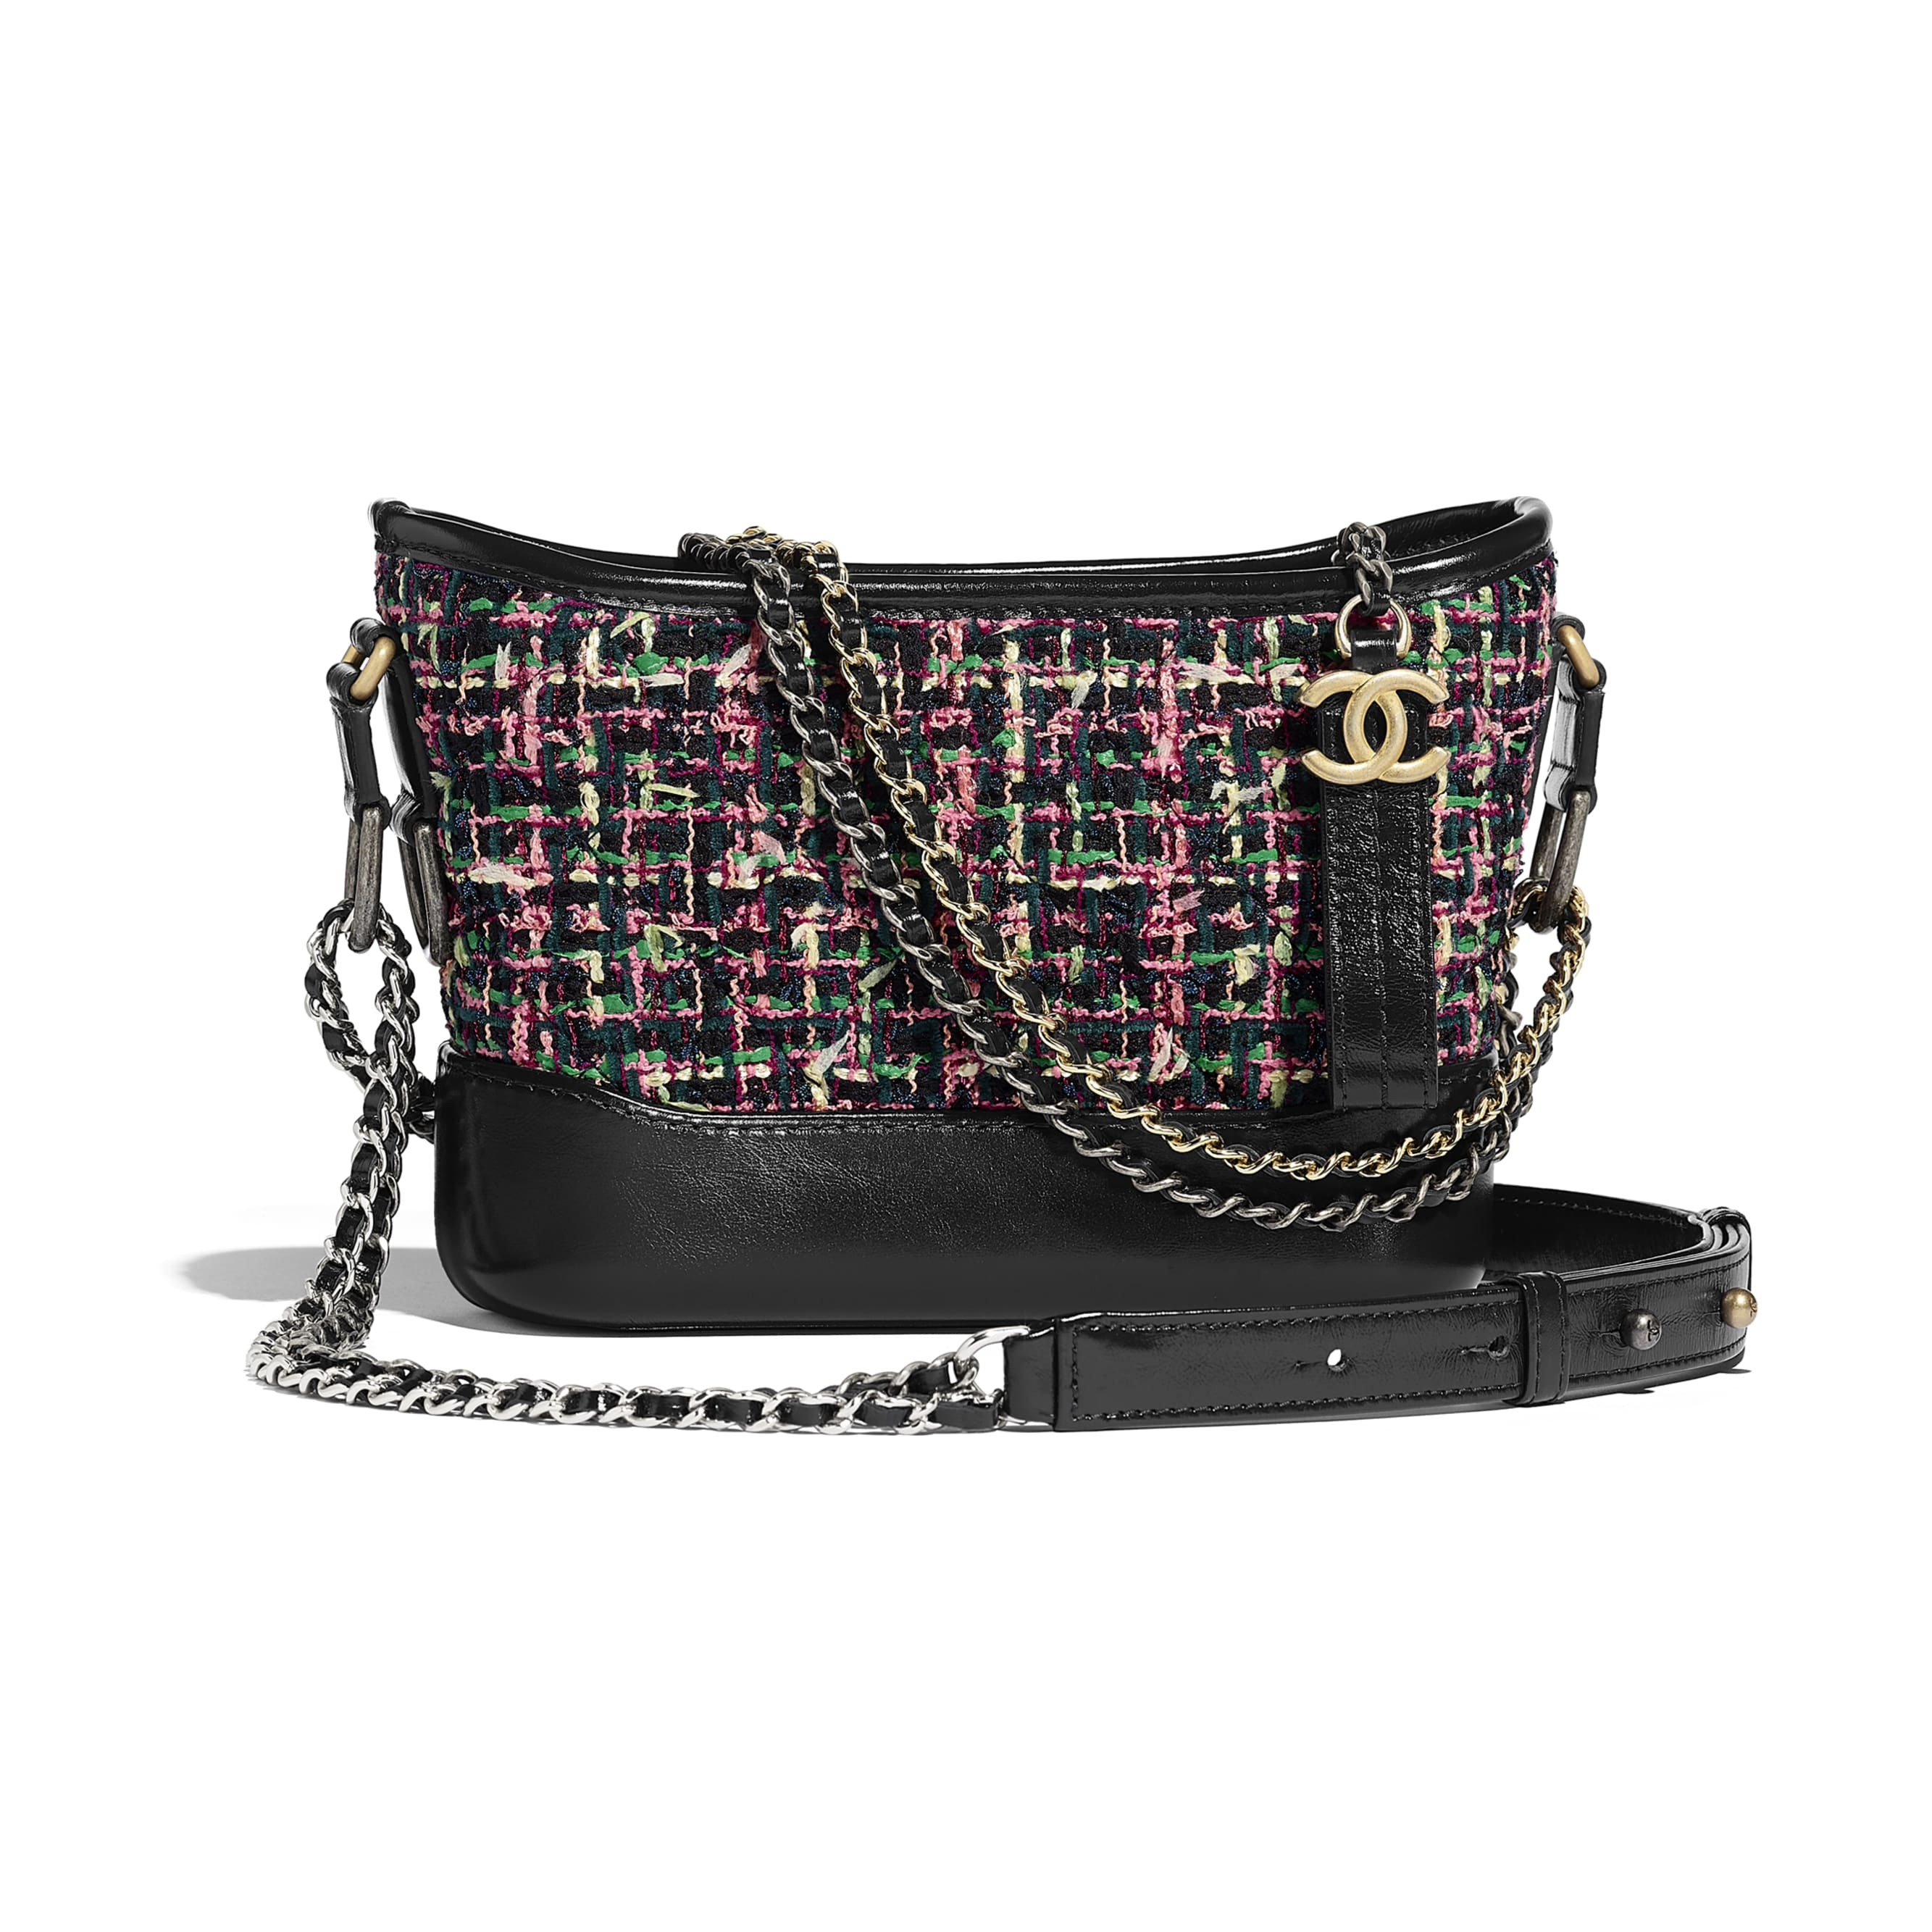 CHANEL'S GABRIELLE Small Hobo Bag - Pink & Navy Blue - Tweed, Calfskin, Gold-Tone & Silver-Tone Metal - Default view - see standard sized version